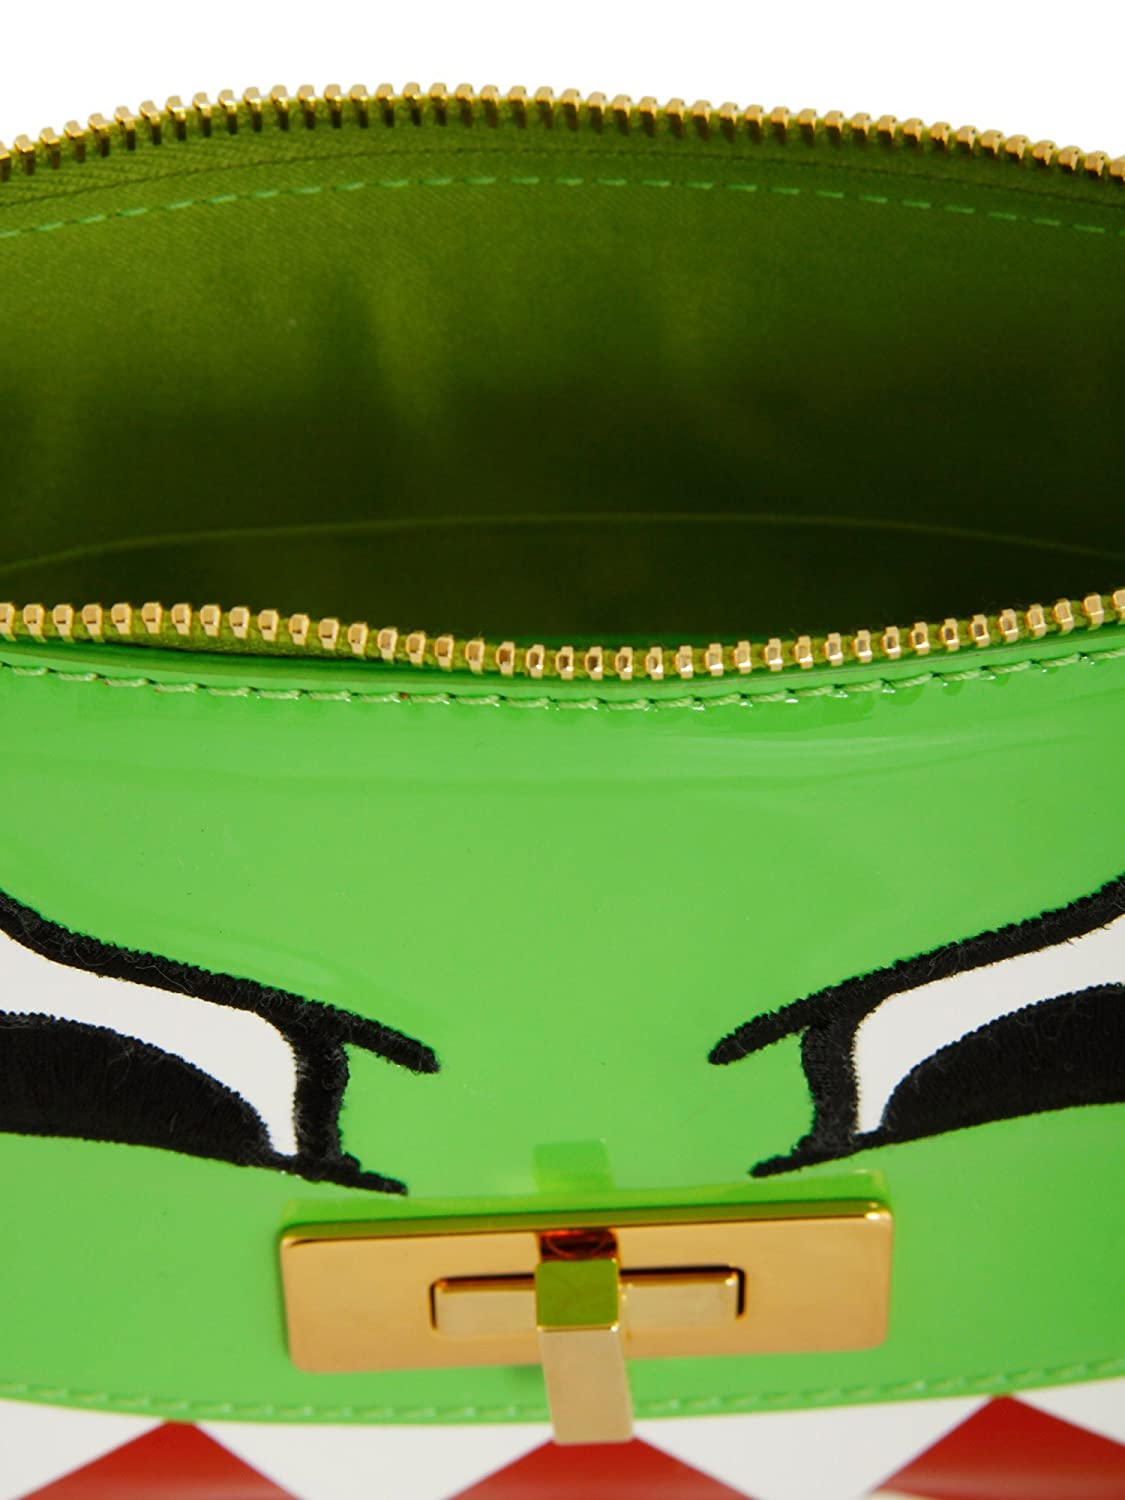 Moschino Cheap and Chic Italy Dino Green Patent Leather Monster Clutch New